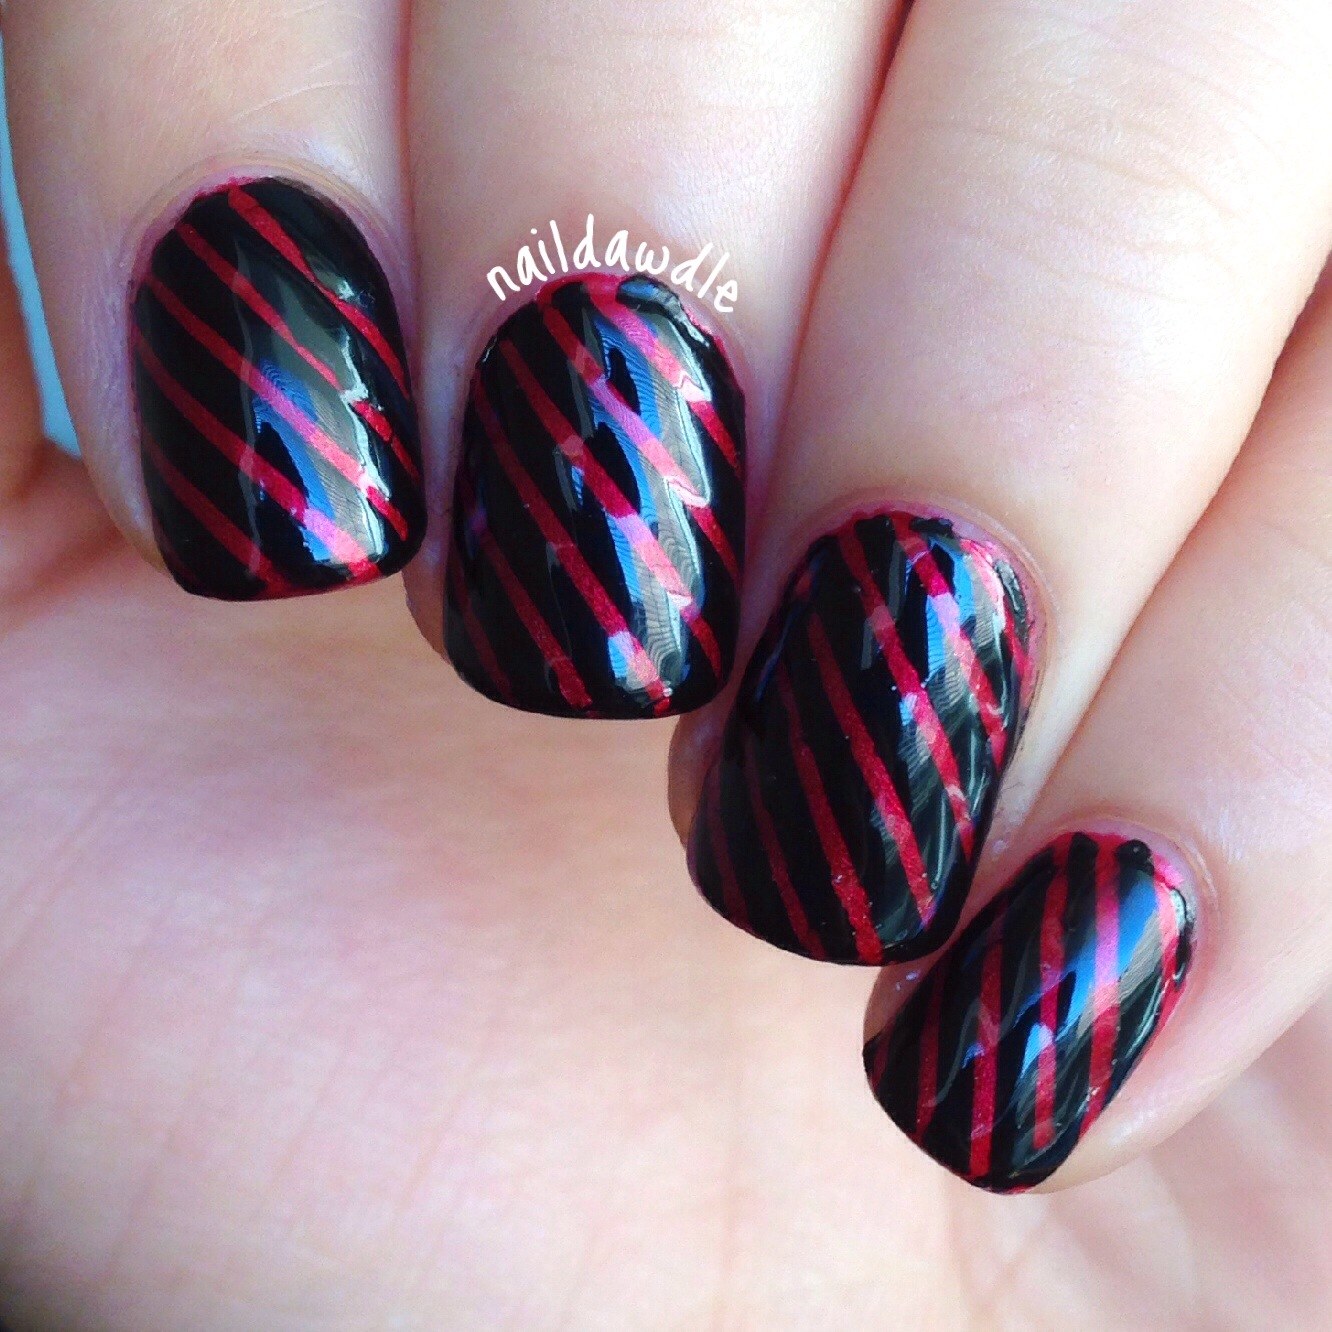 Nail Art Using Striping Tape: Experimenting With Striping Tape